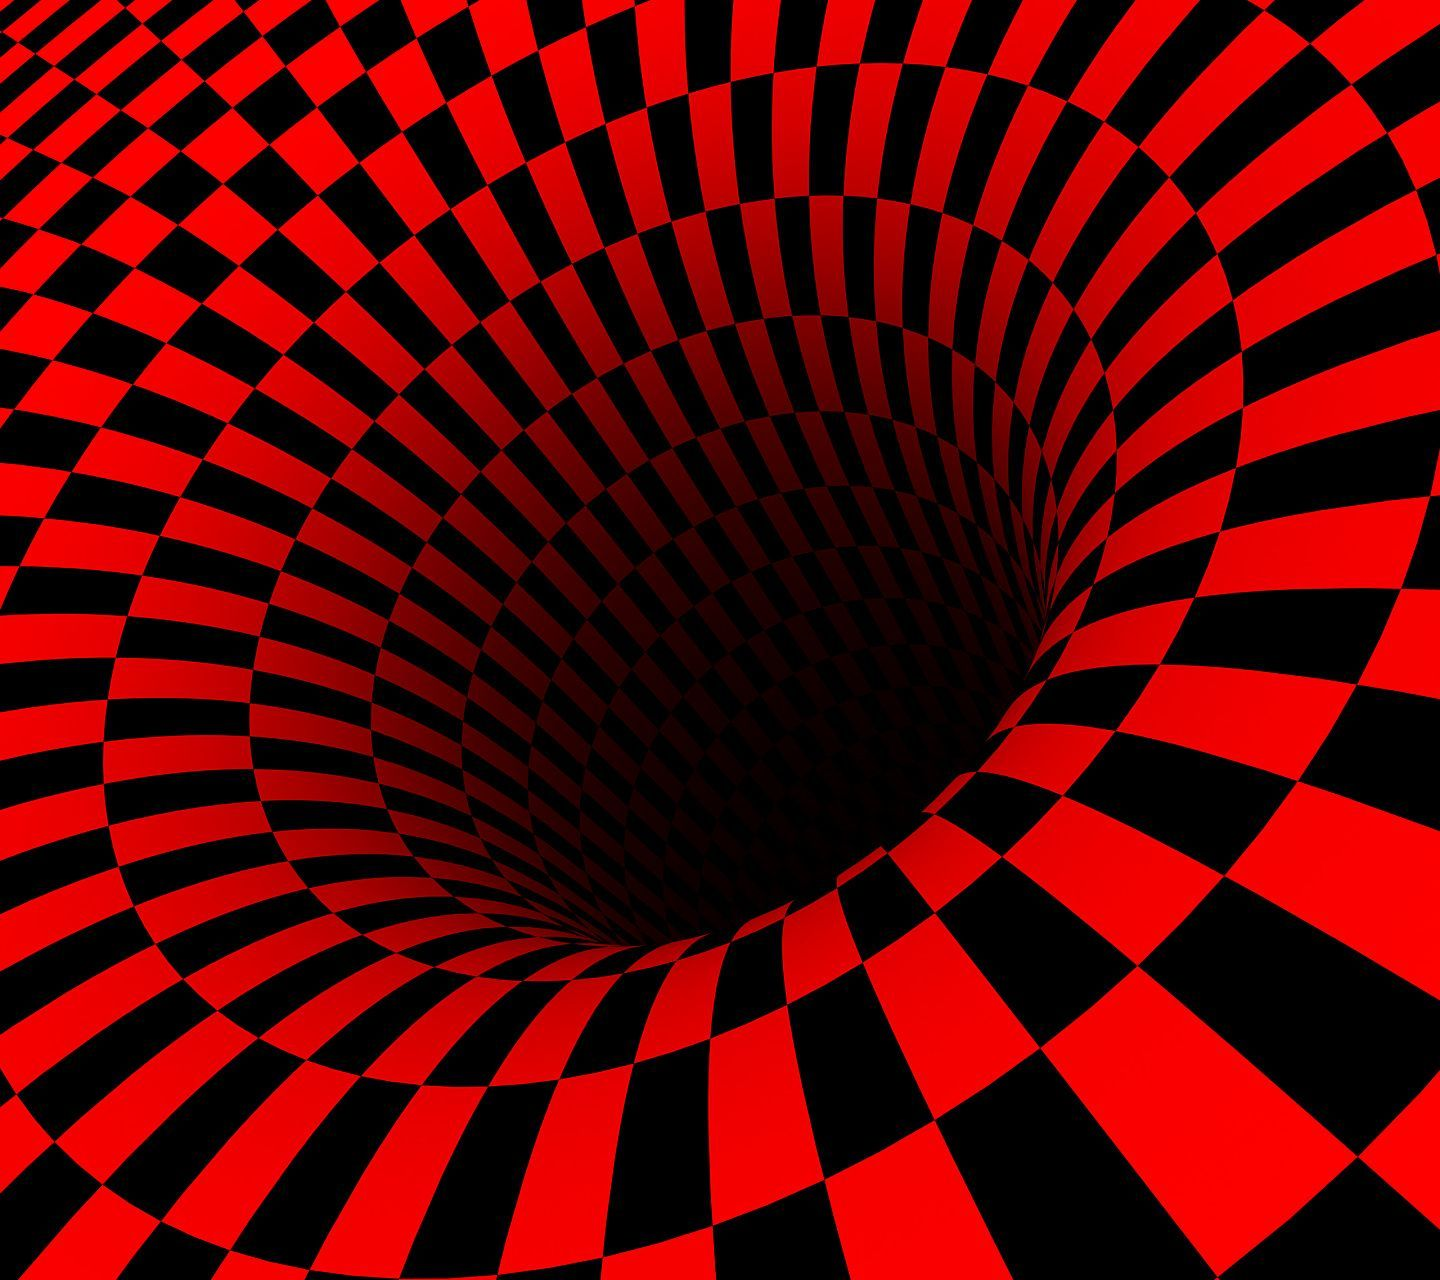 Red Optical Illusion Wallpapers Top Free Red Optical